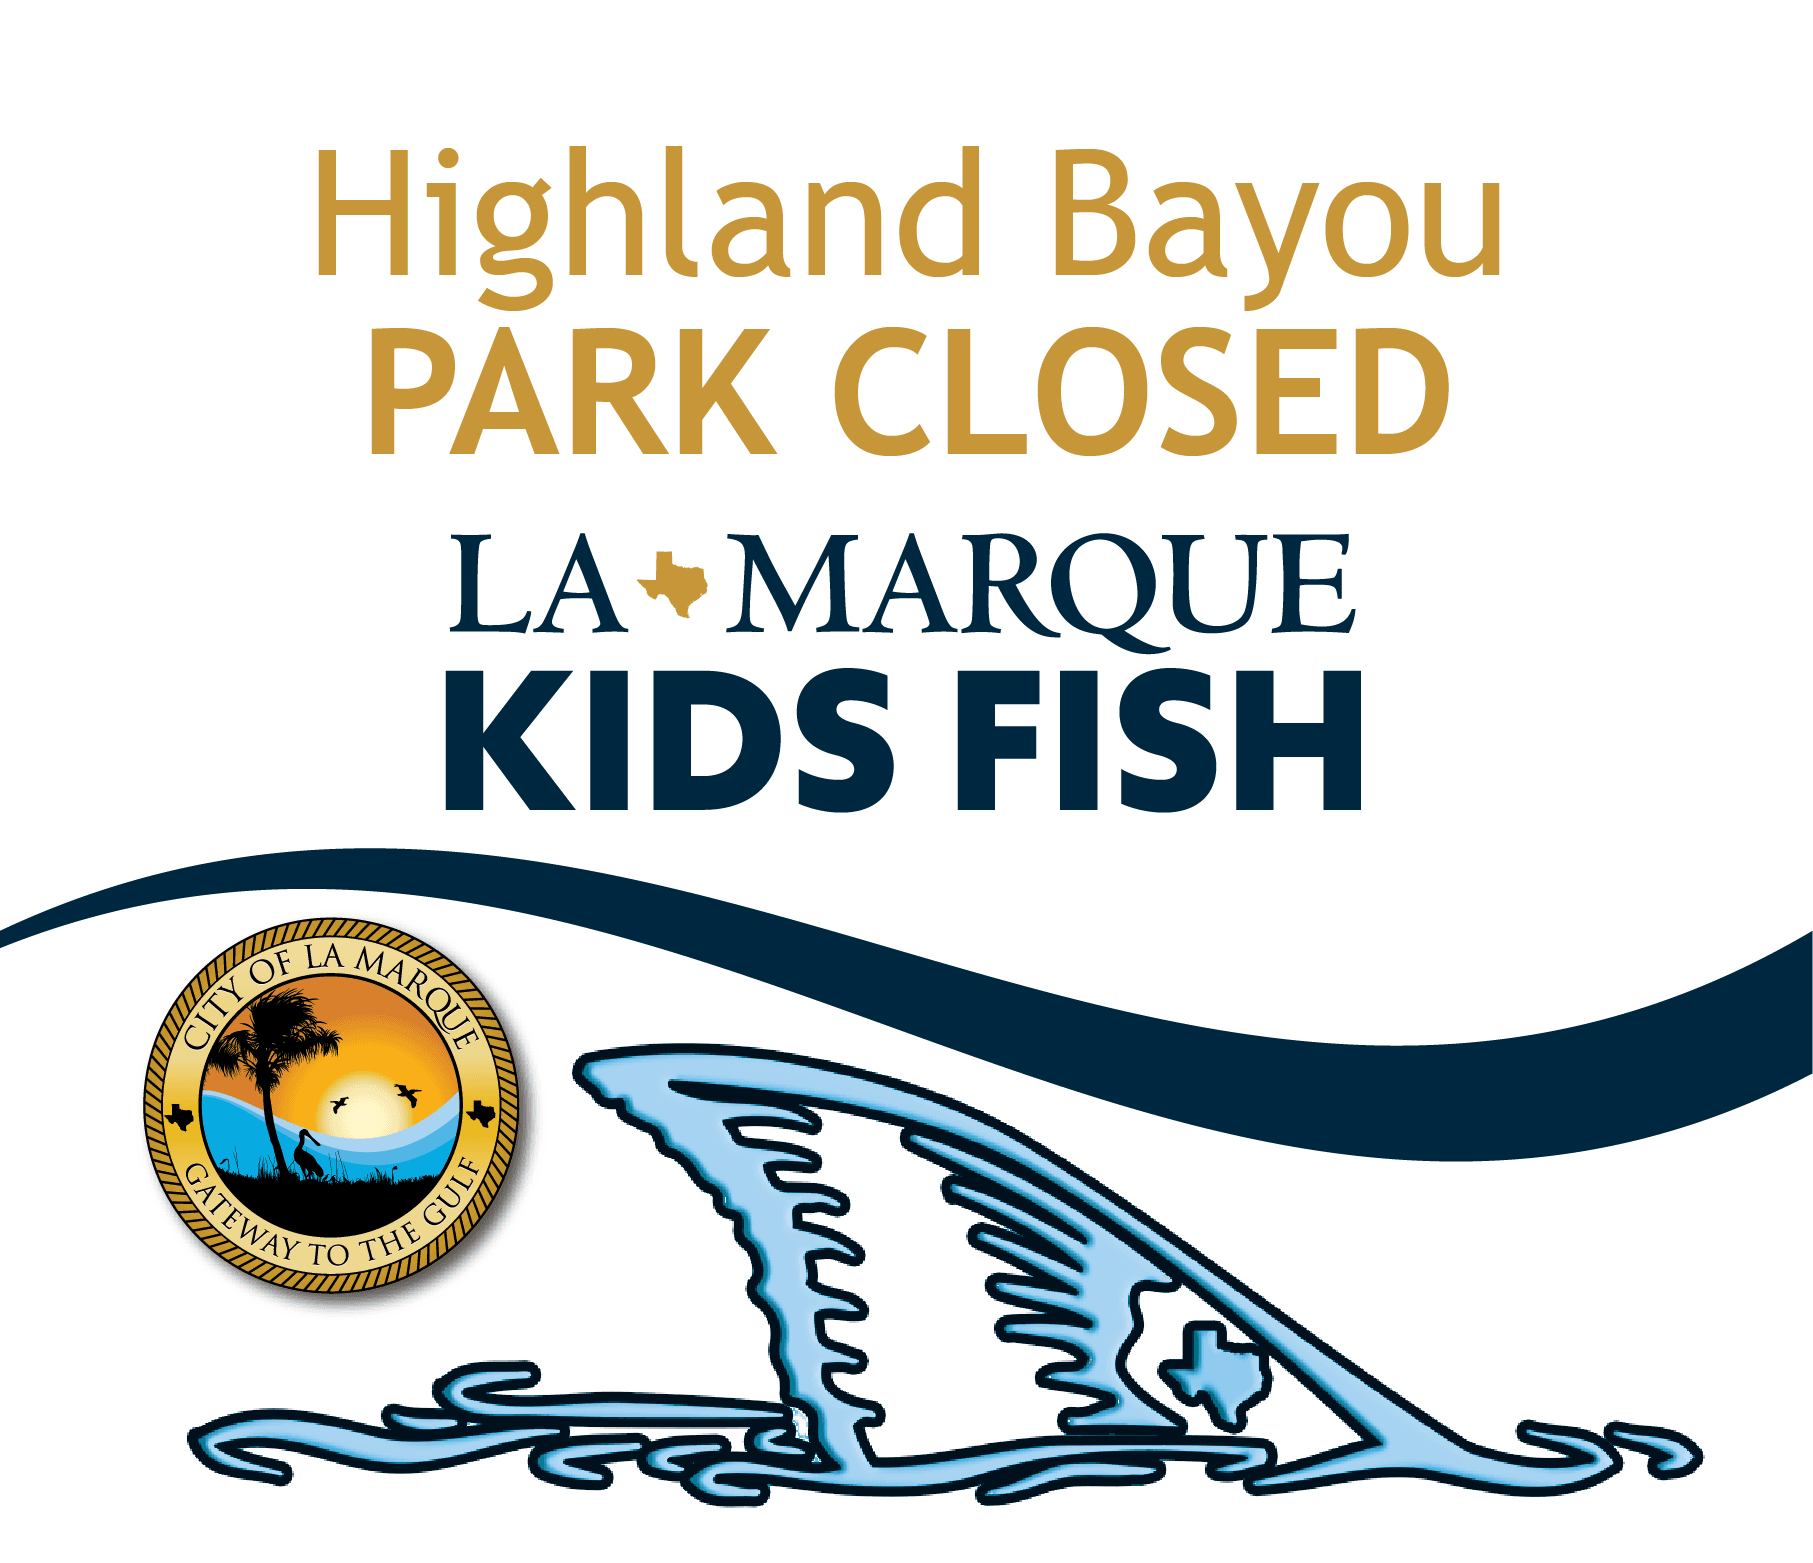 Kids Fish Park Closed Friday and Saturday